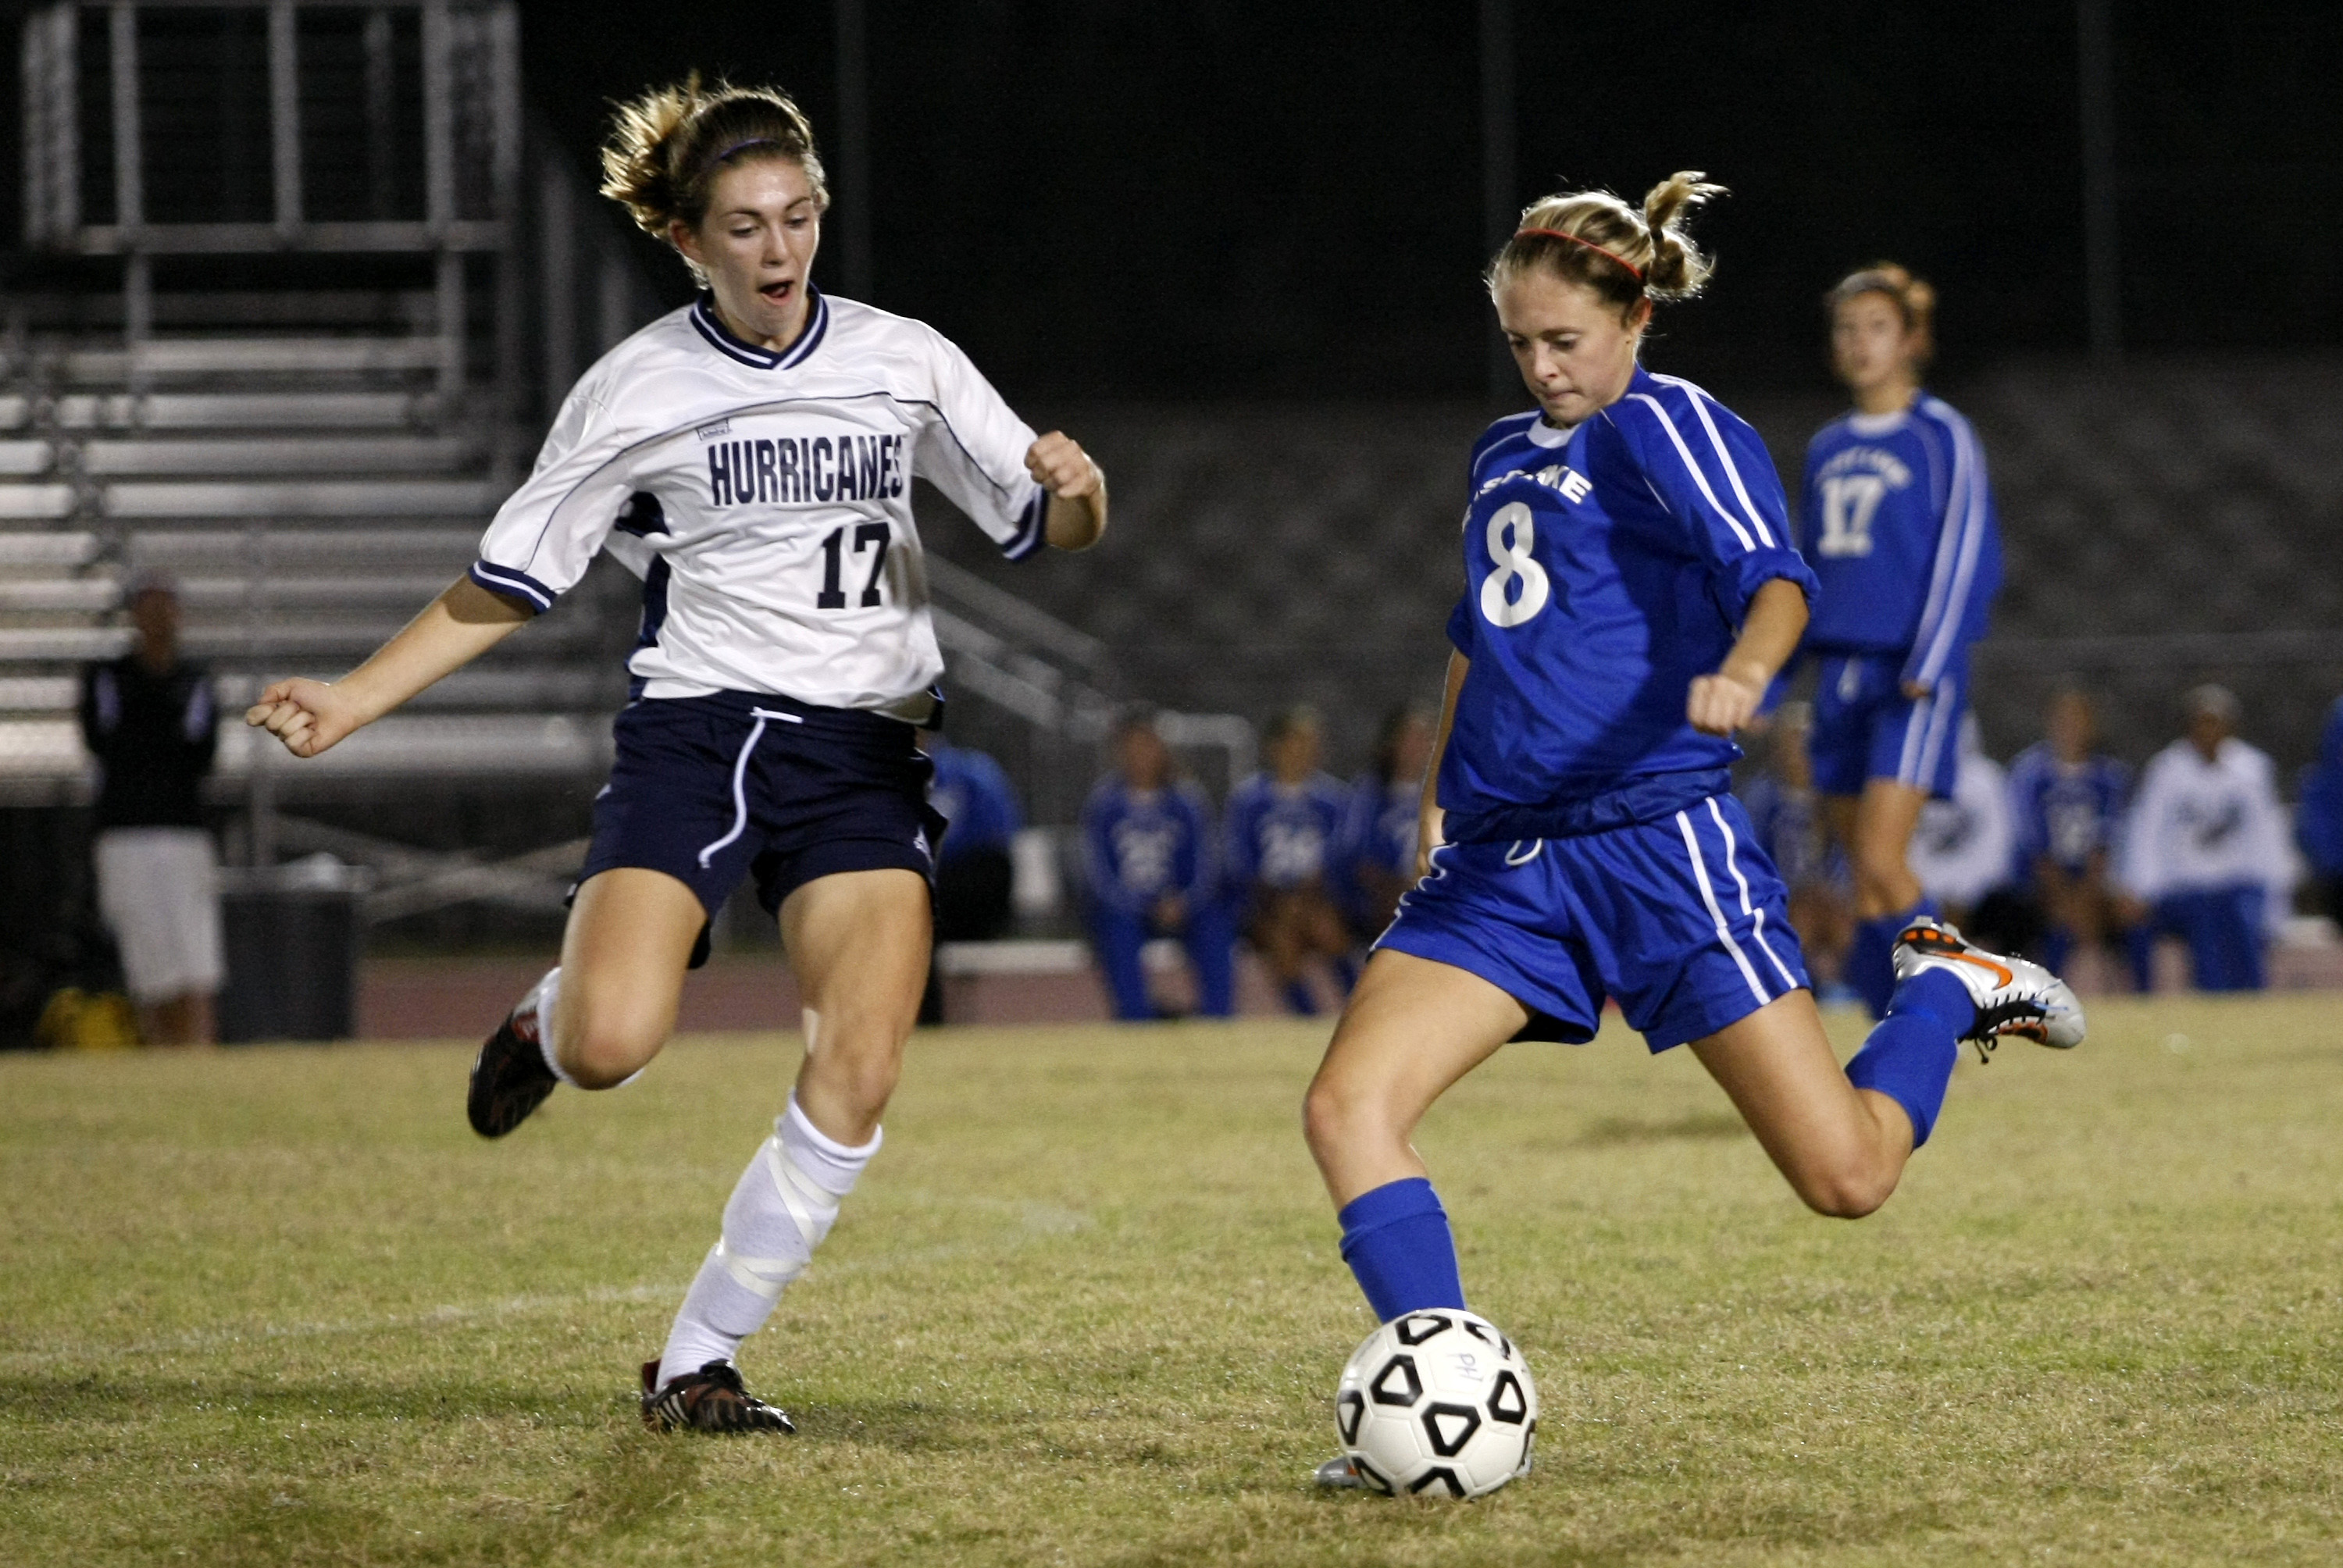 Palm Harbor University High's Kelly Phipps (17) and East Lake High's Meghan Dodge (8) battle for possession during the Hurricane Watch Soccer Tournament final on Friday, Dec. 17, 2010 at Palm Harbor University High School in Palm Harbor, FL. BRIAN BLANCO/Special to the Times